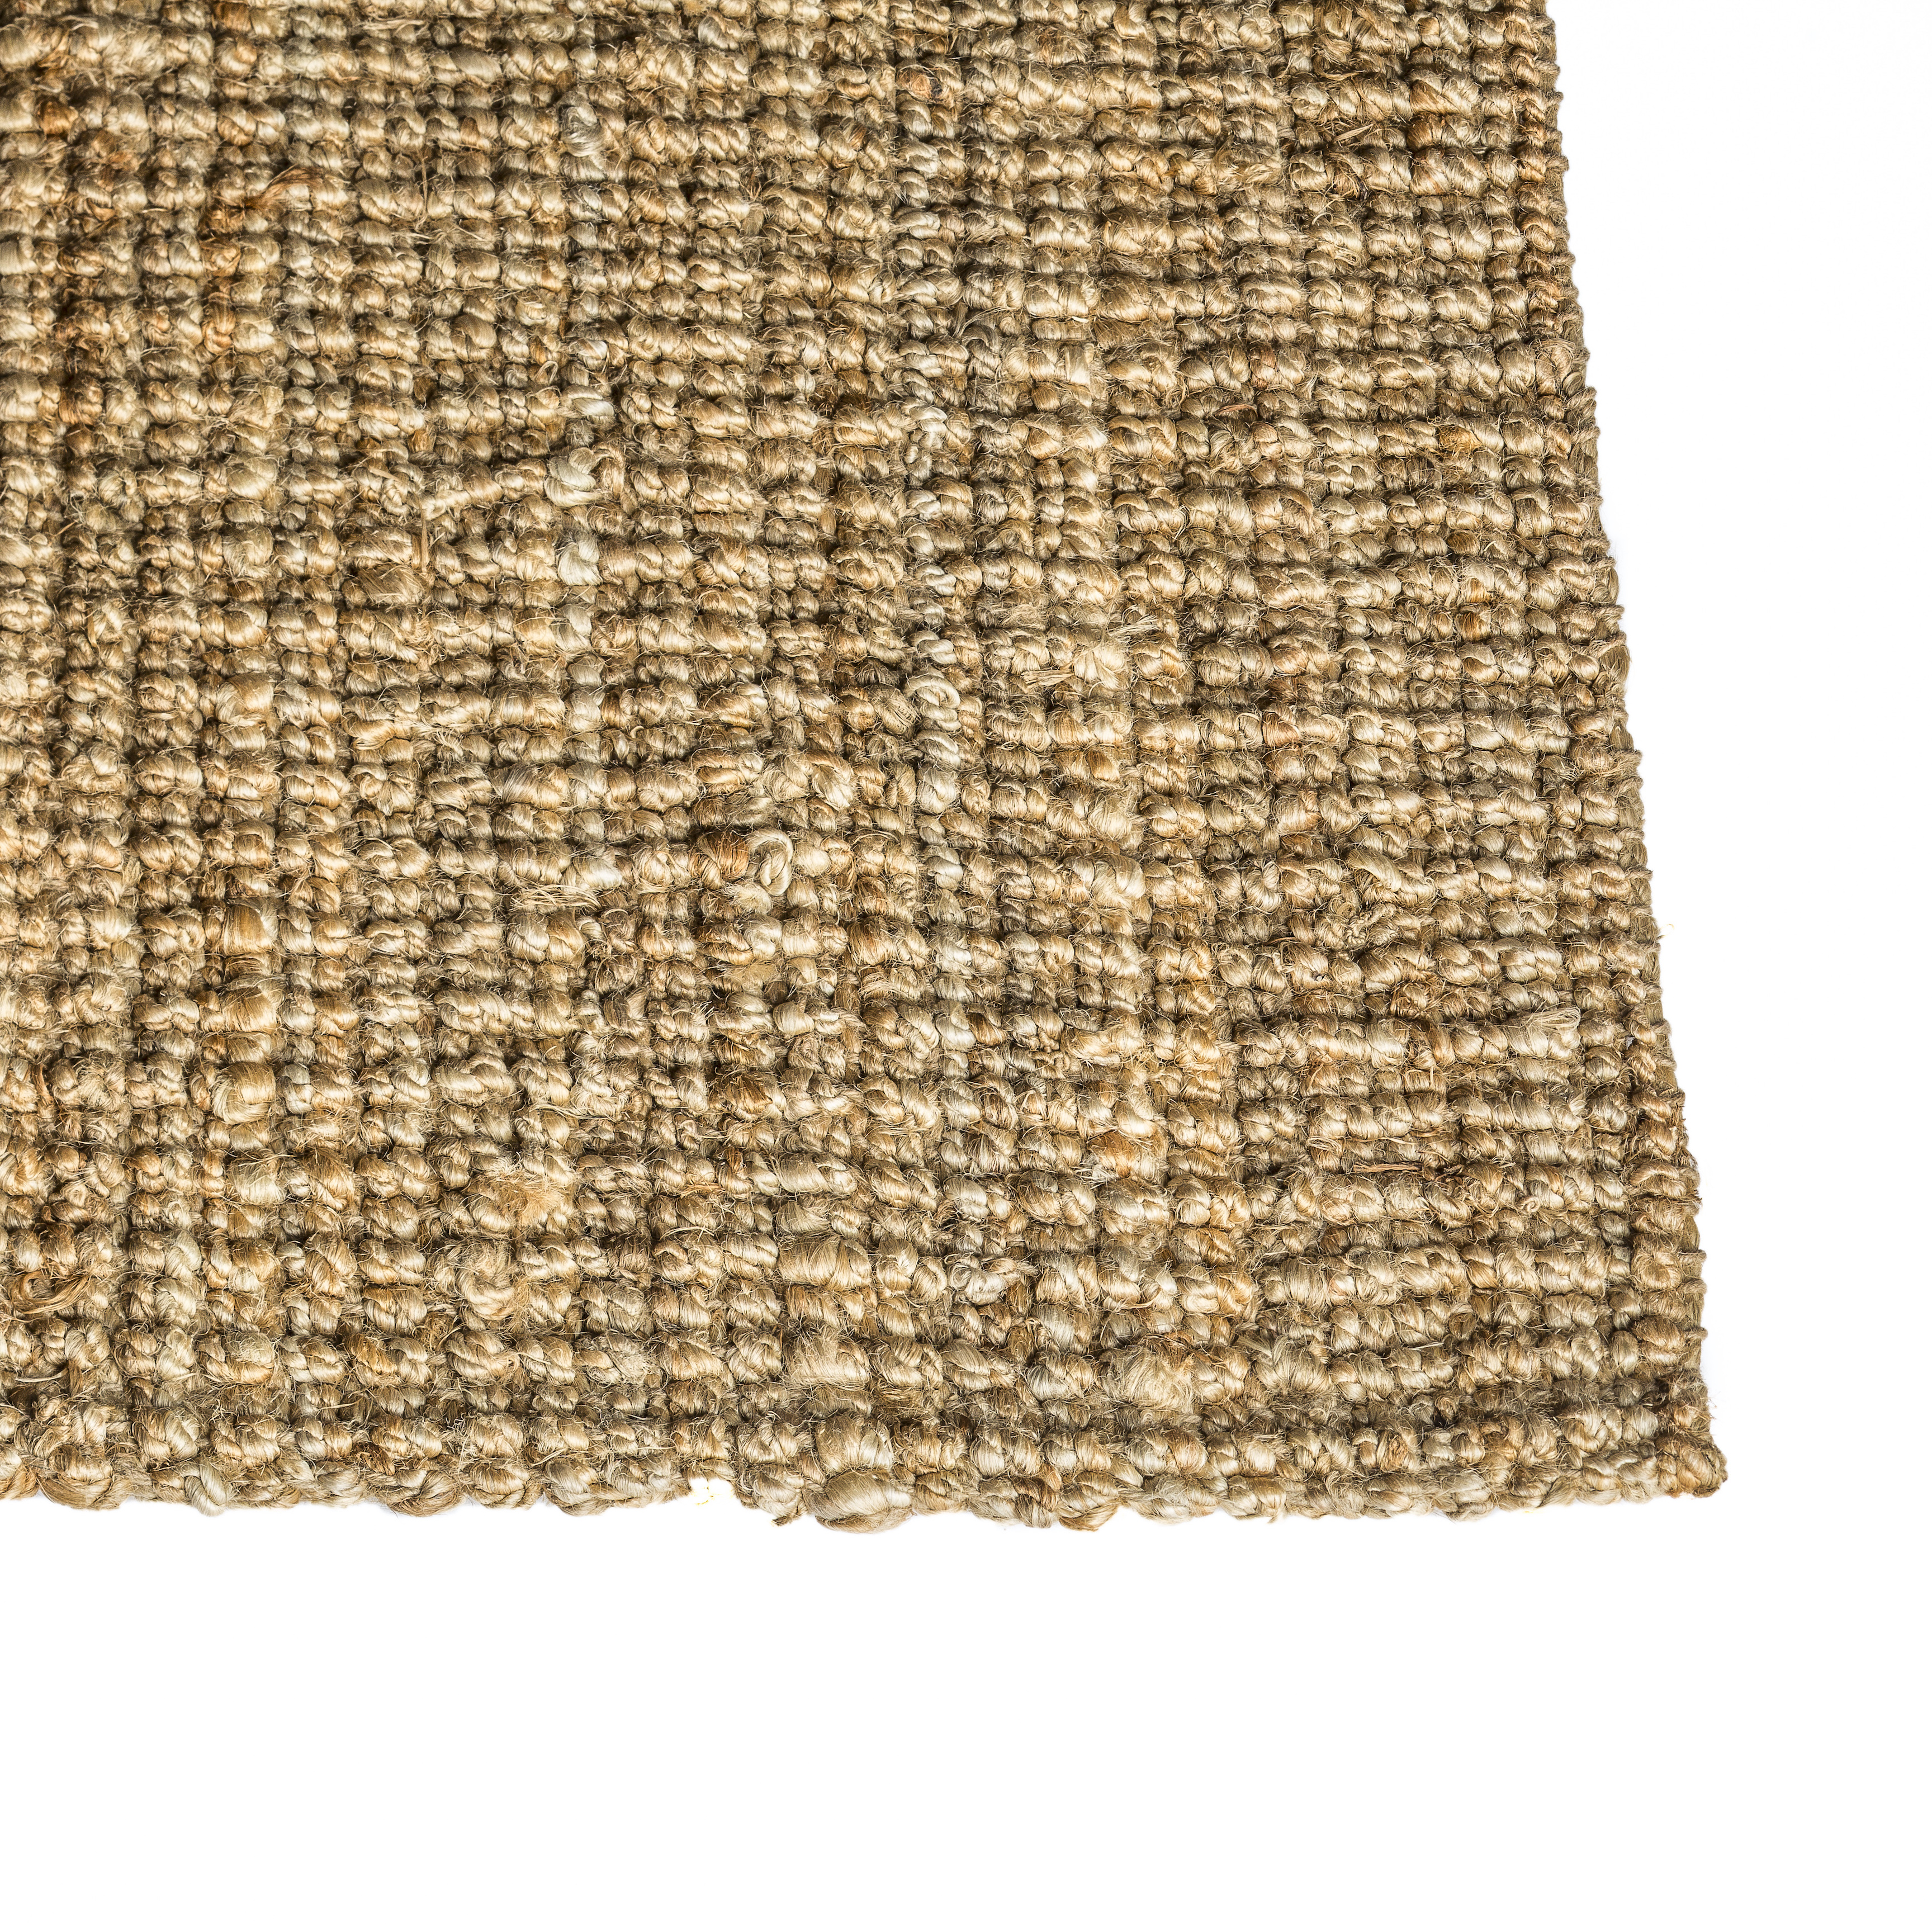 Area Rug Sisal Encore Events Rentals : Area RugSisalNatural from encoreeventsrentals.com size 3456 x 3456 jpeg 7617kB